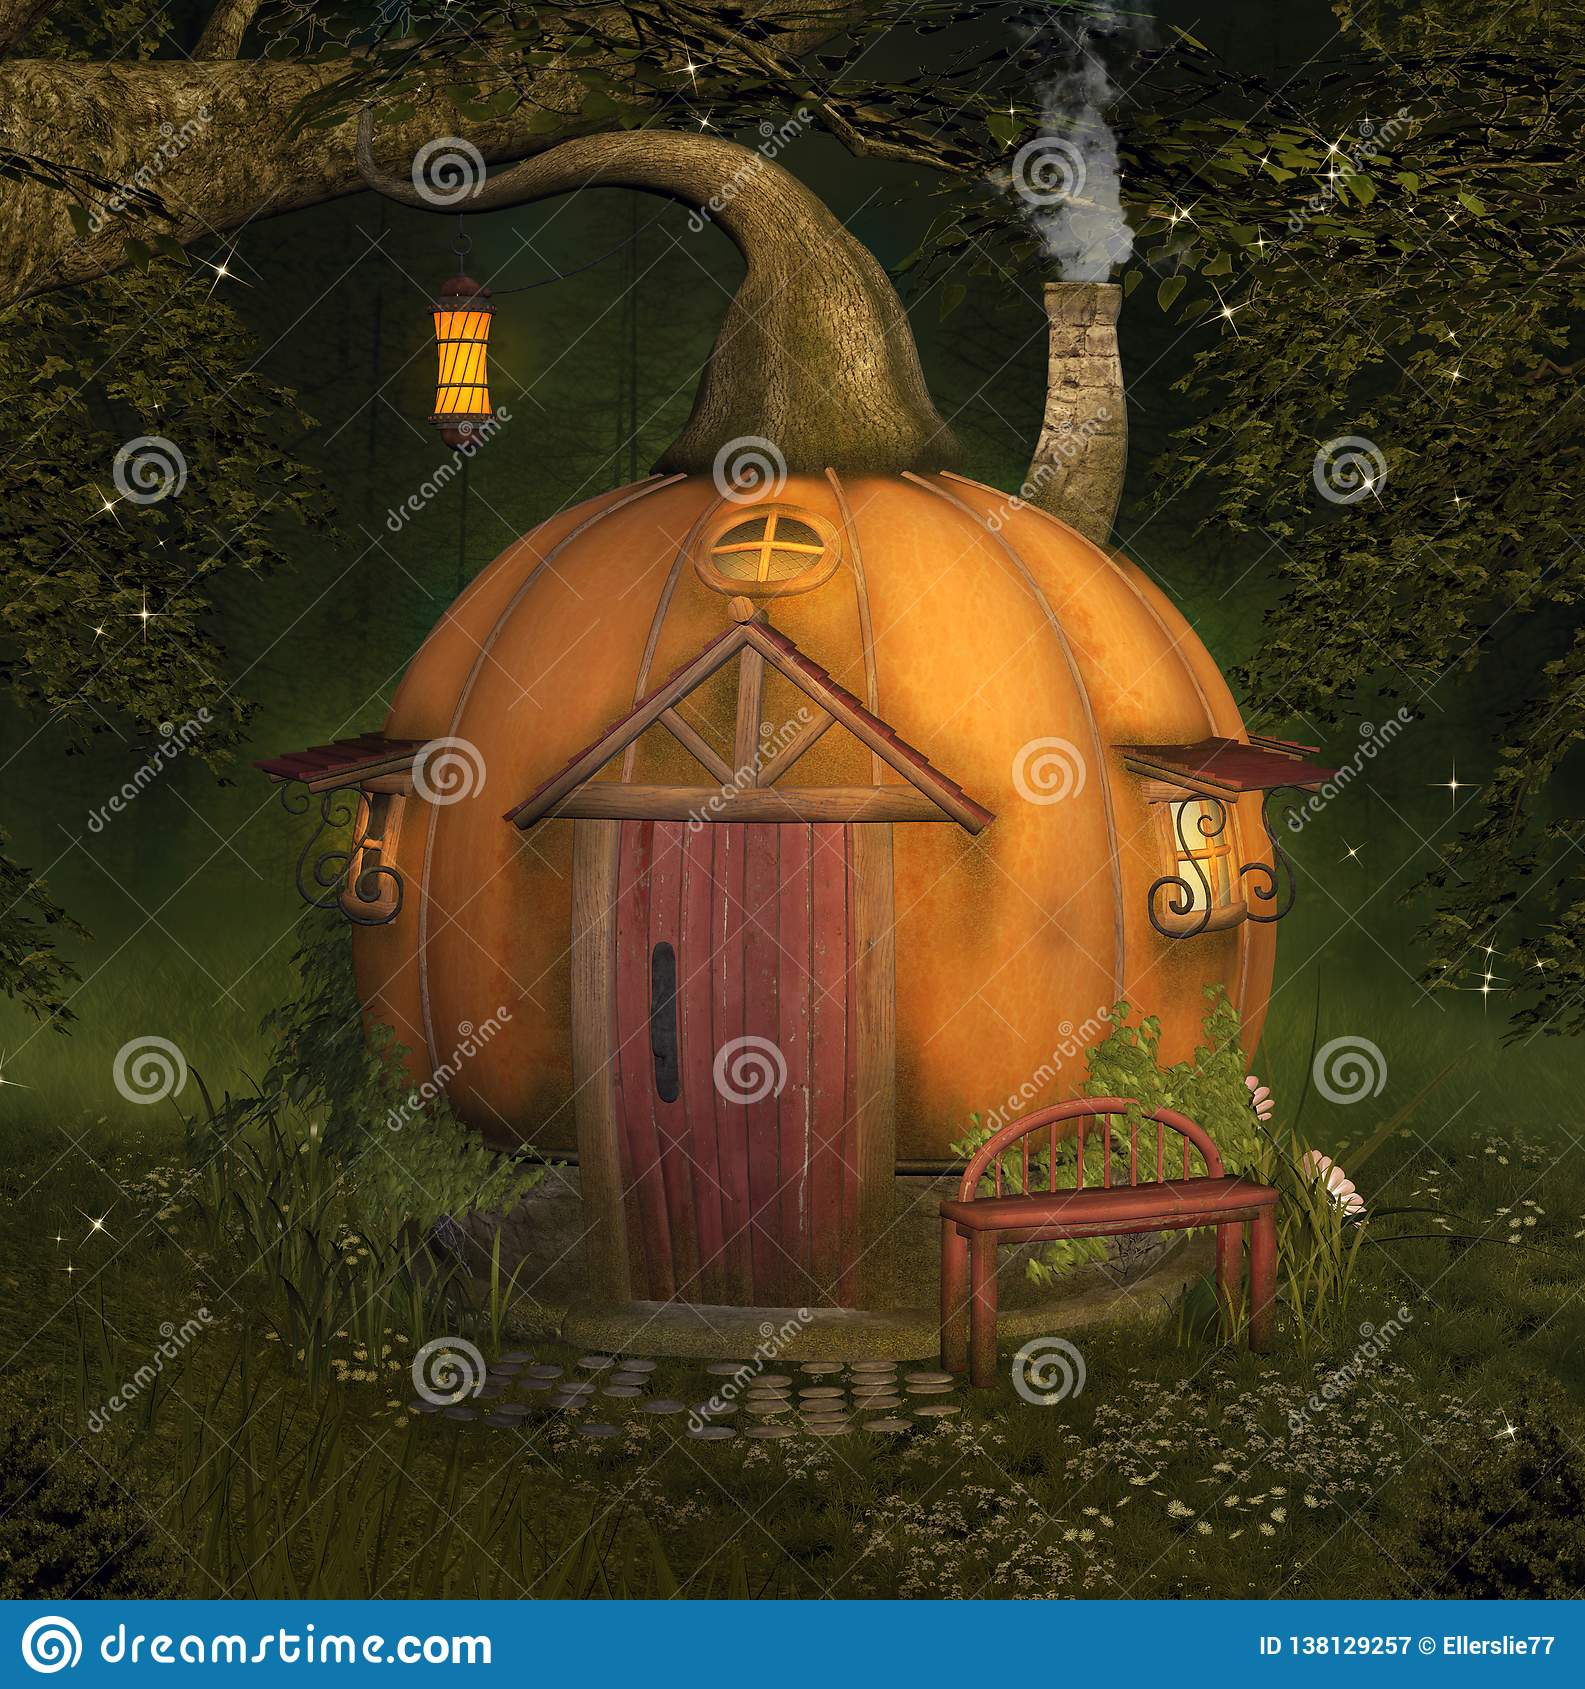 Enchanted pumpkin house in the forest